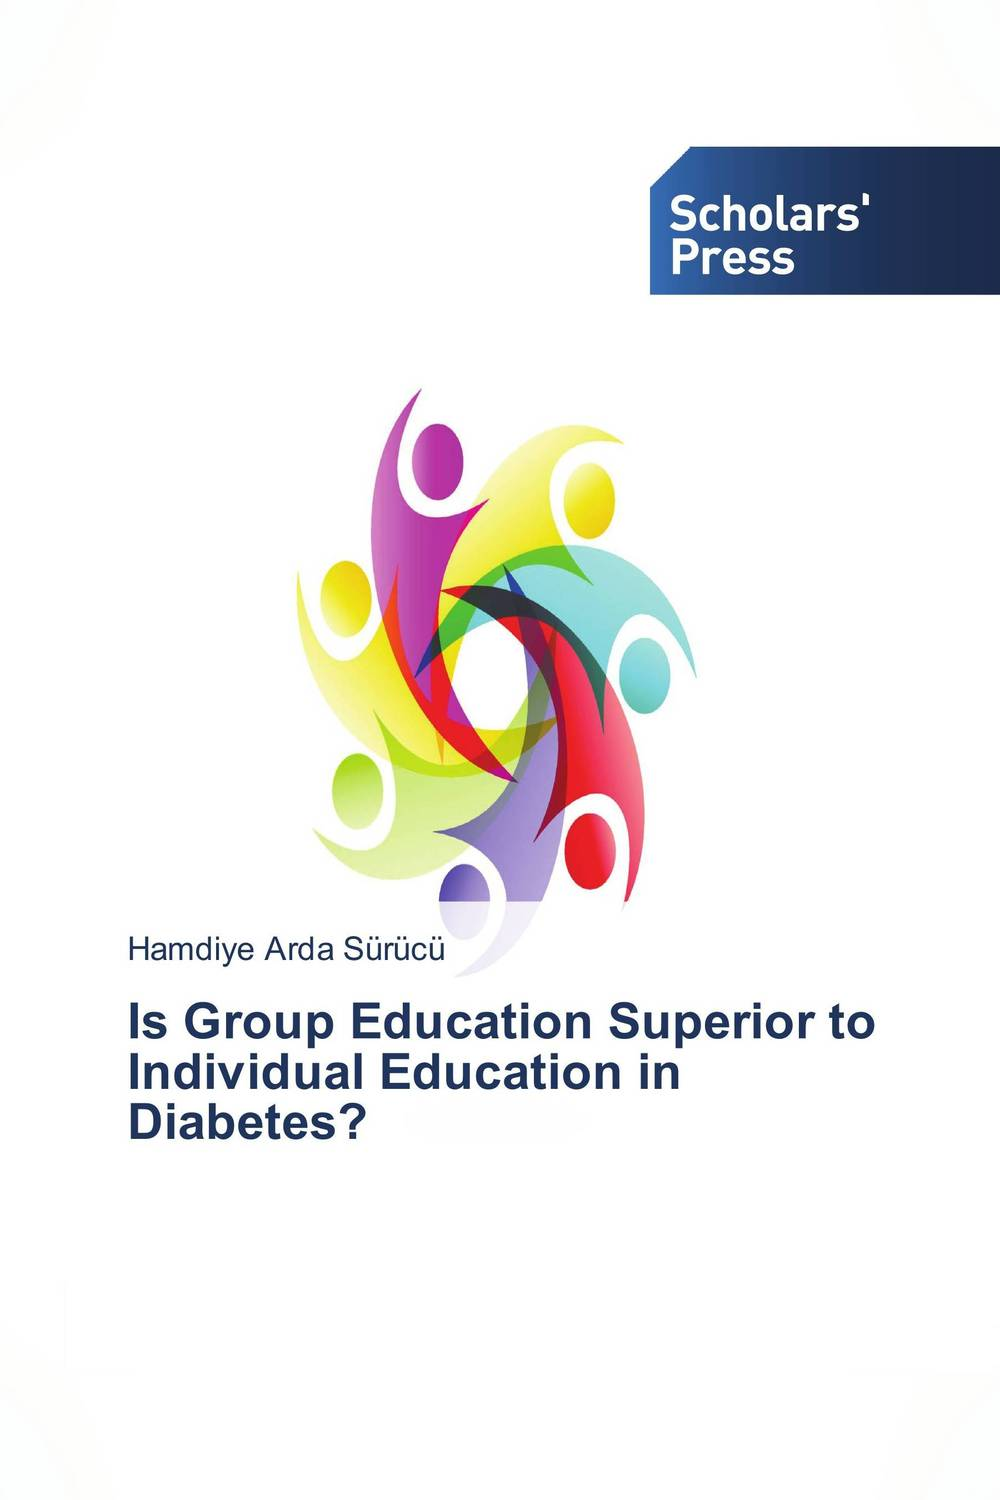 Is Group Education Superior to Individual Education in Diabetes?